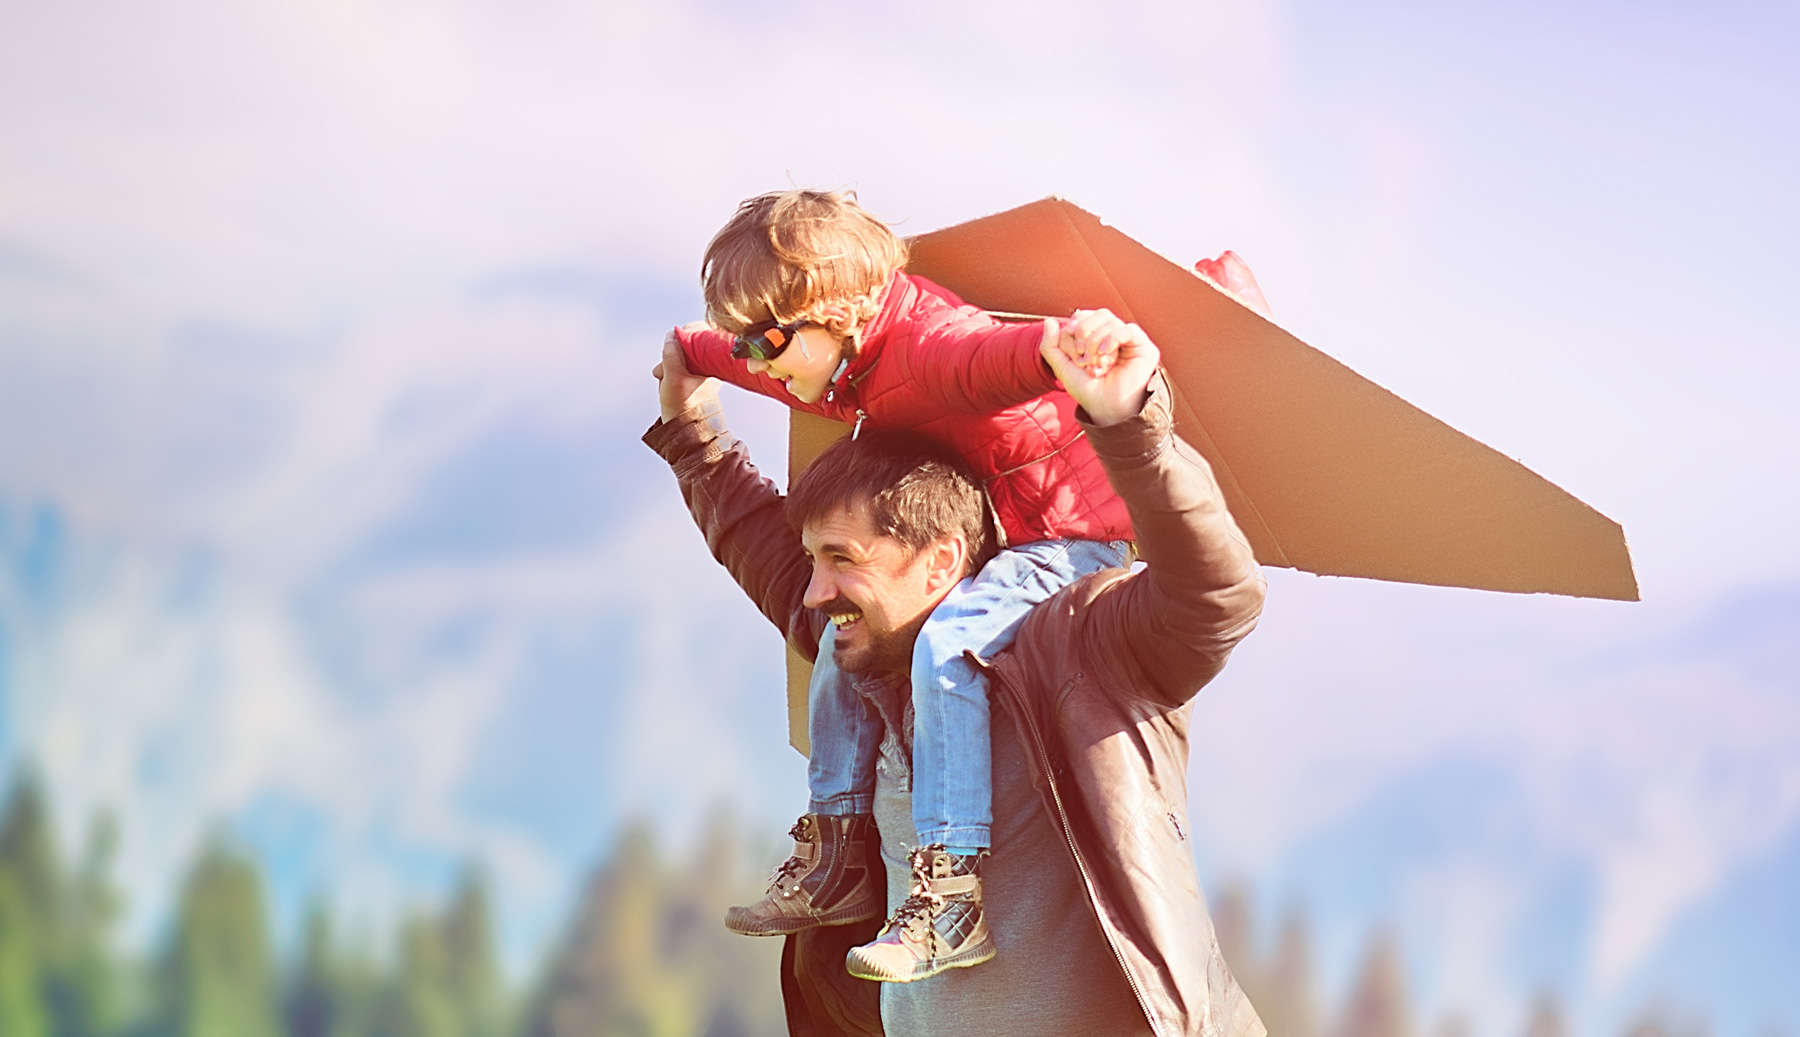 dad with son on his shoulders pretending to fly like an airplane